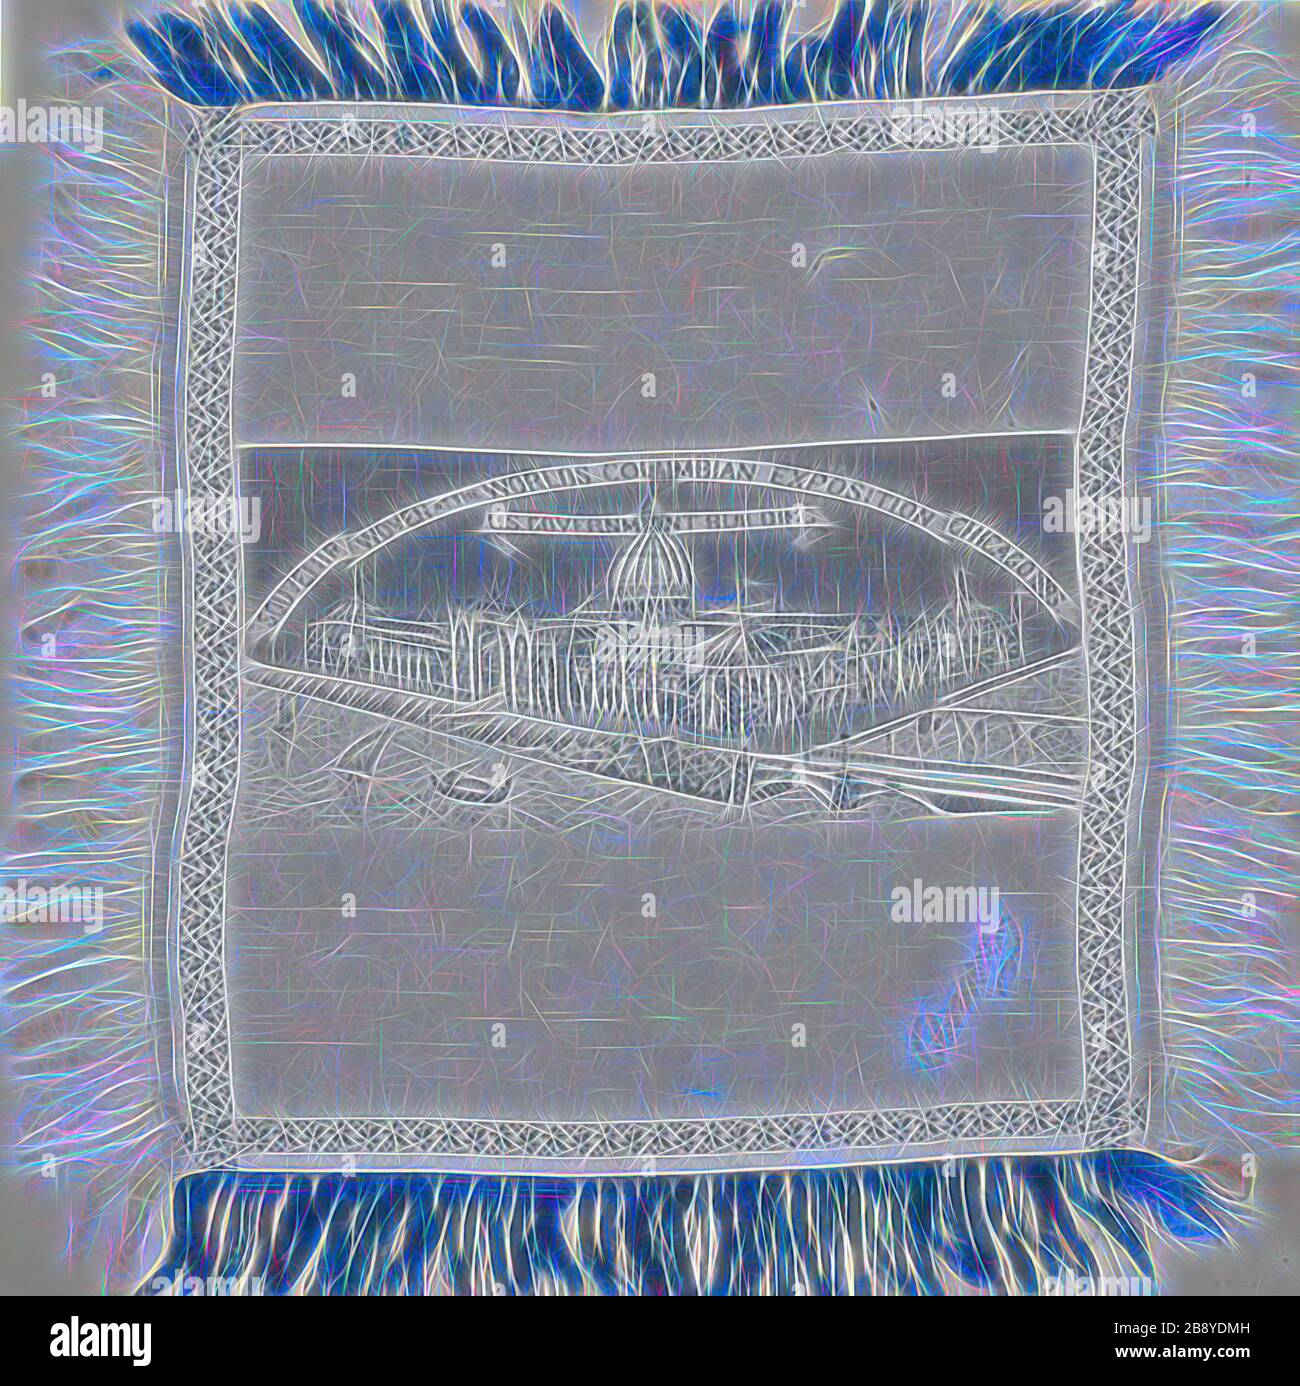 Scarf Commemorating the World's Columbian Exposition, 1893, United States, Illinois, Chicago, Chicago, Silk, weft-float faced satin weave self-patterned by main warp floats and areas of plain interlacing, extended ground weft cut fringe, woven on loom with Jacquard attachment, signature embroidered in couching, 34.3 × 34 cm (13 1/2 × 13 3/8 in.), Reimagined by Gibon, design of warm cheerful glowing of brightness and light rays radiance. Classic art reinvented with a modern twist. Photography inspired by futurism, embracing dynamic energy of modern technology, movement, speed and revolutionize Stock Photo